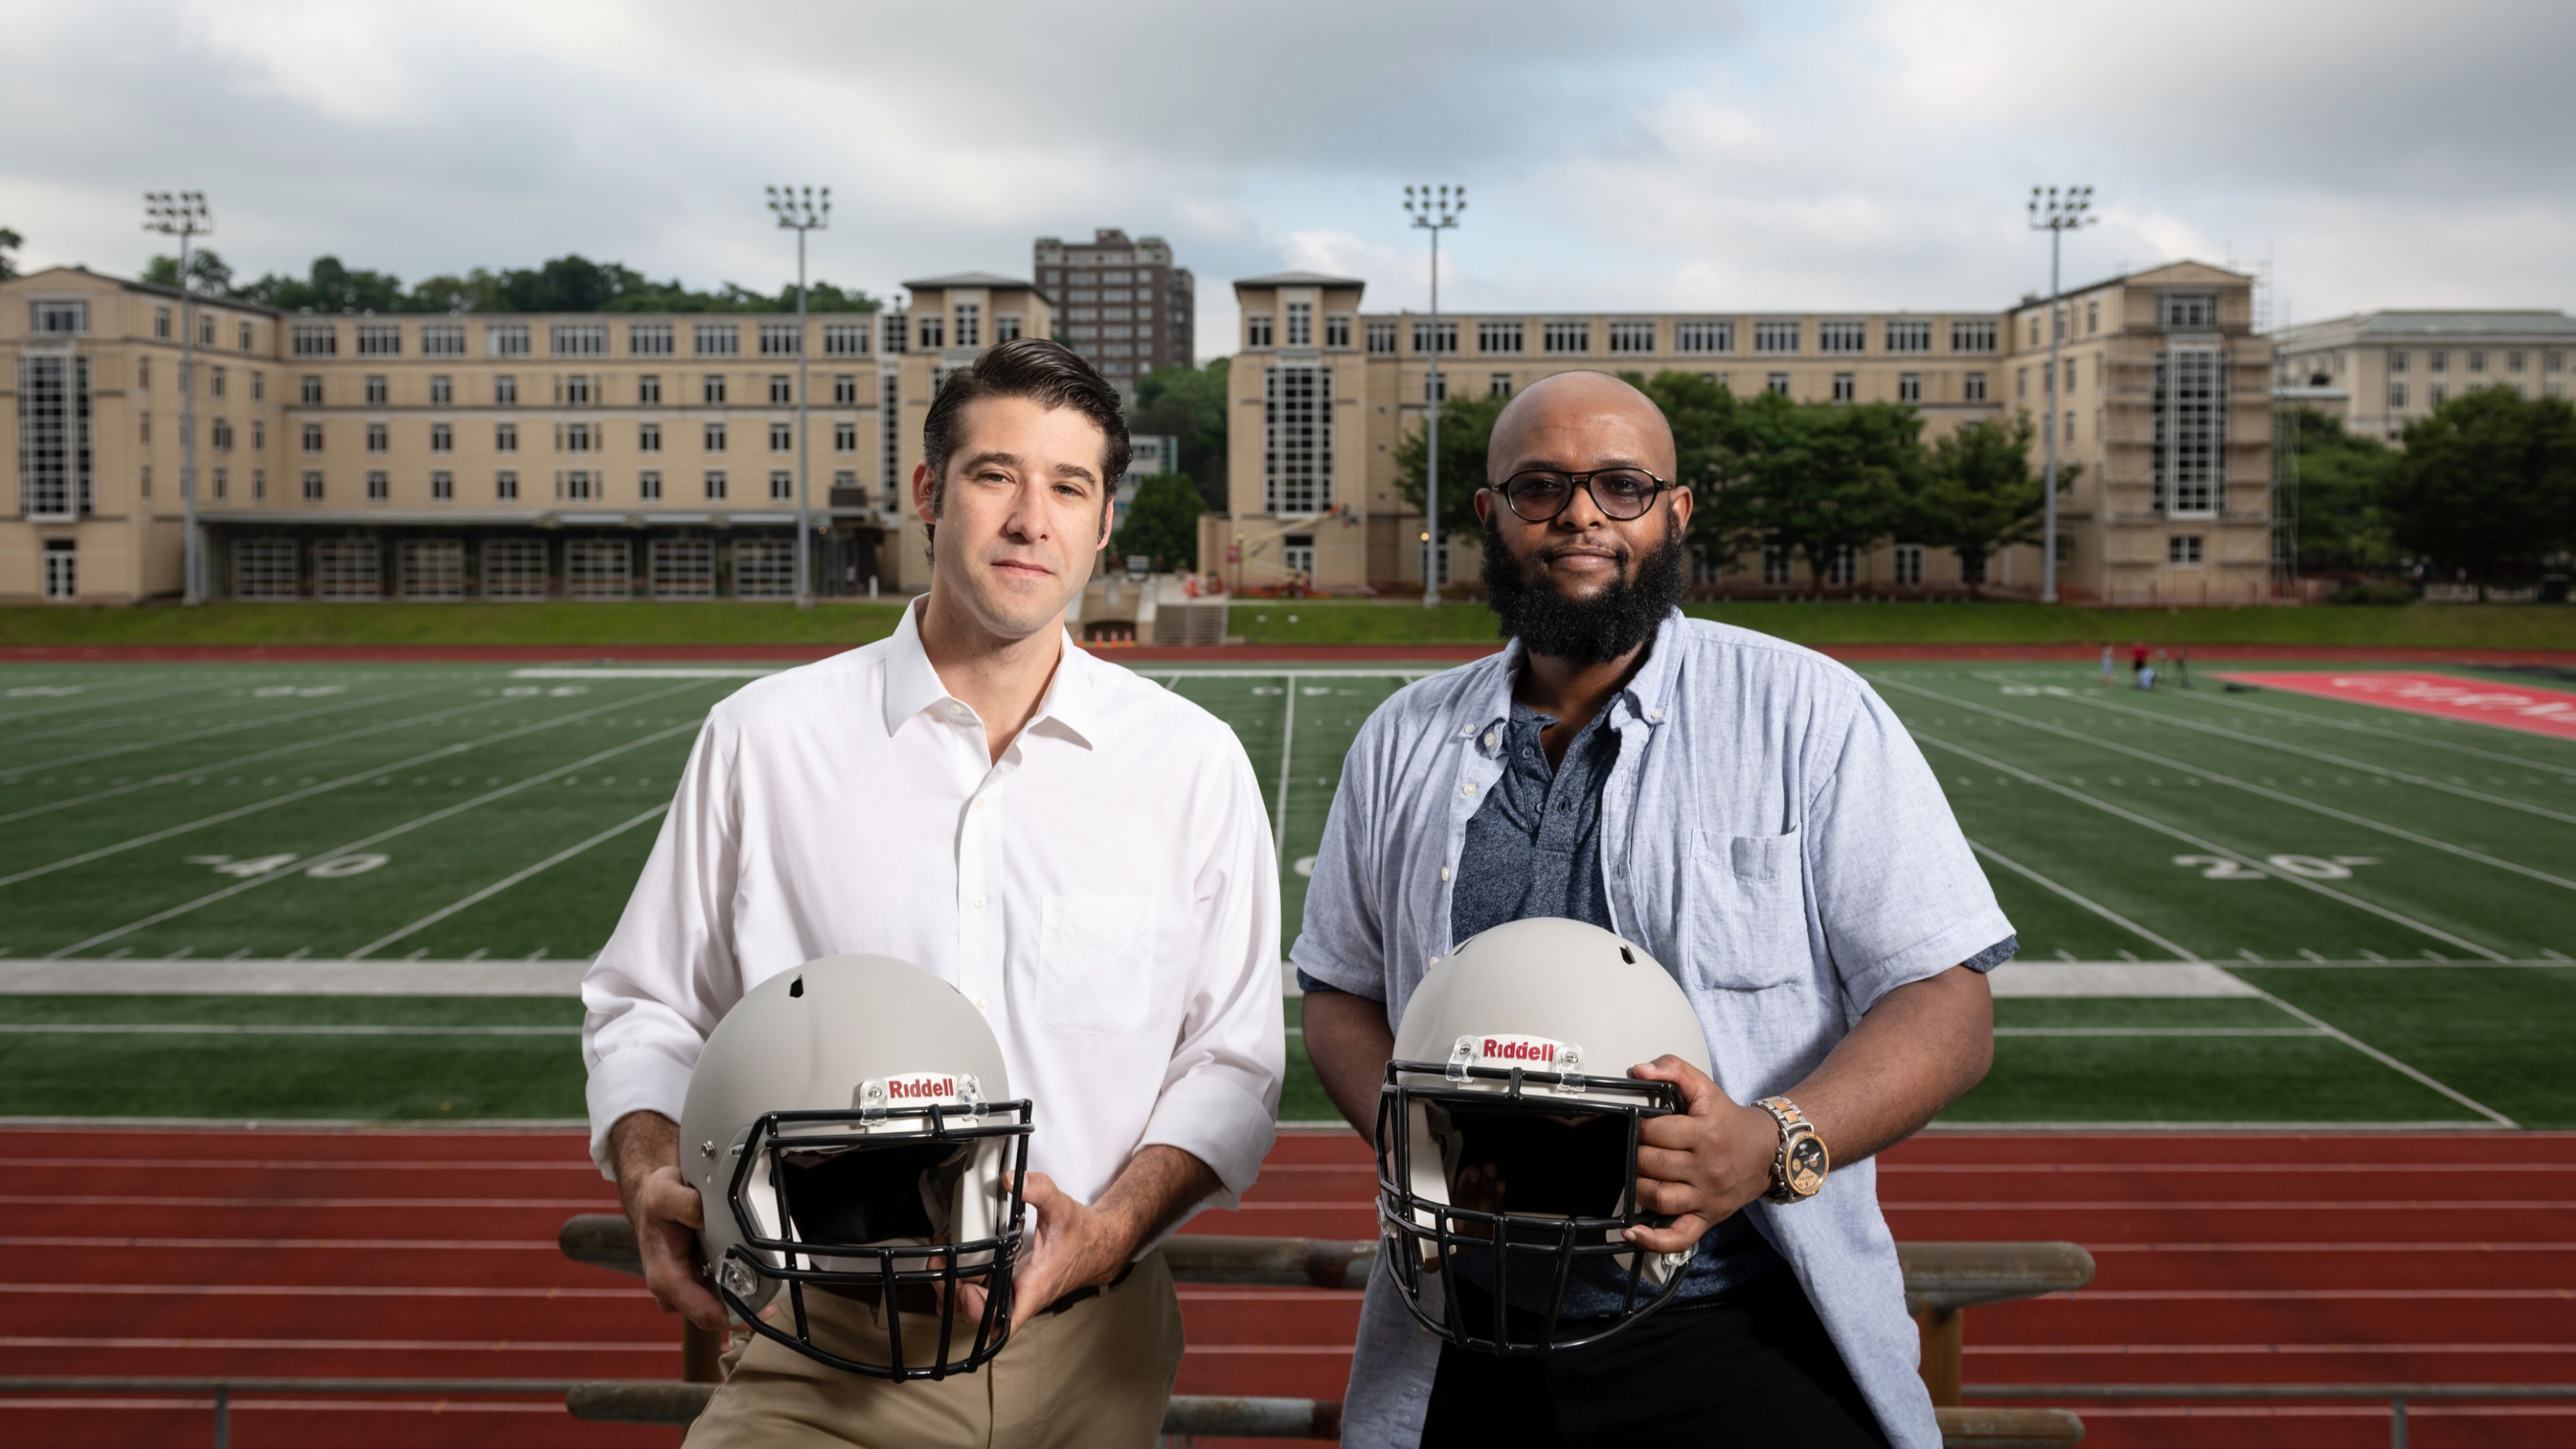 Brad Mahon and Adnan Hirad pose with football helmets in front of a football field.